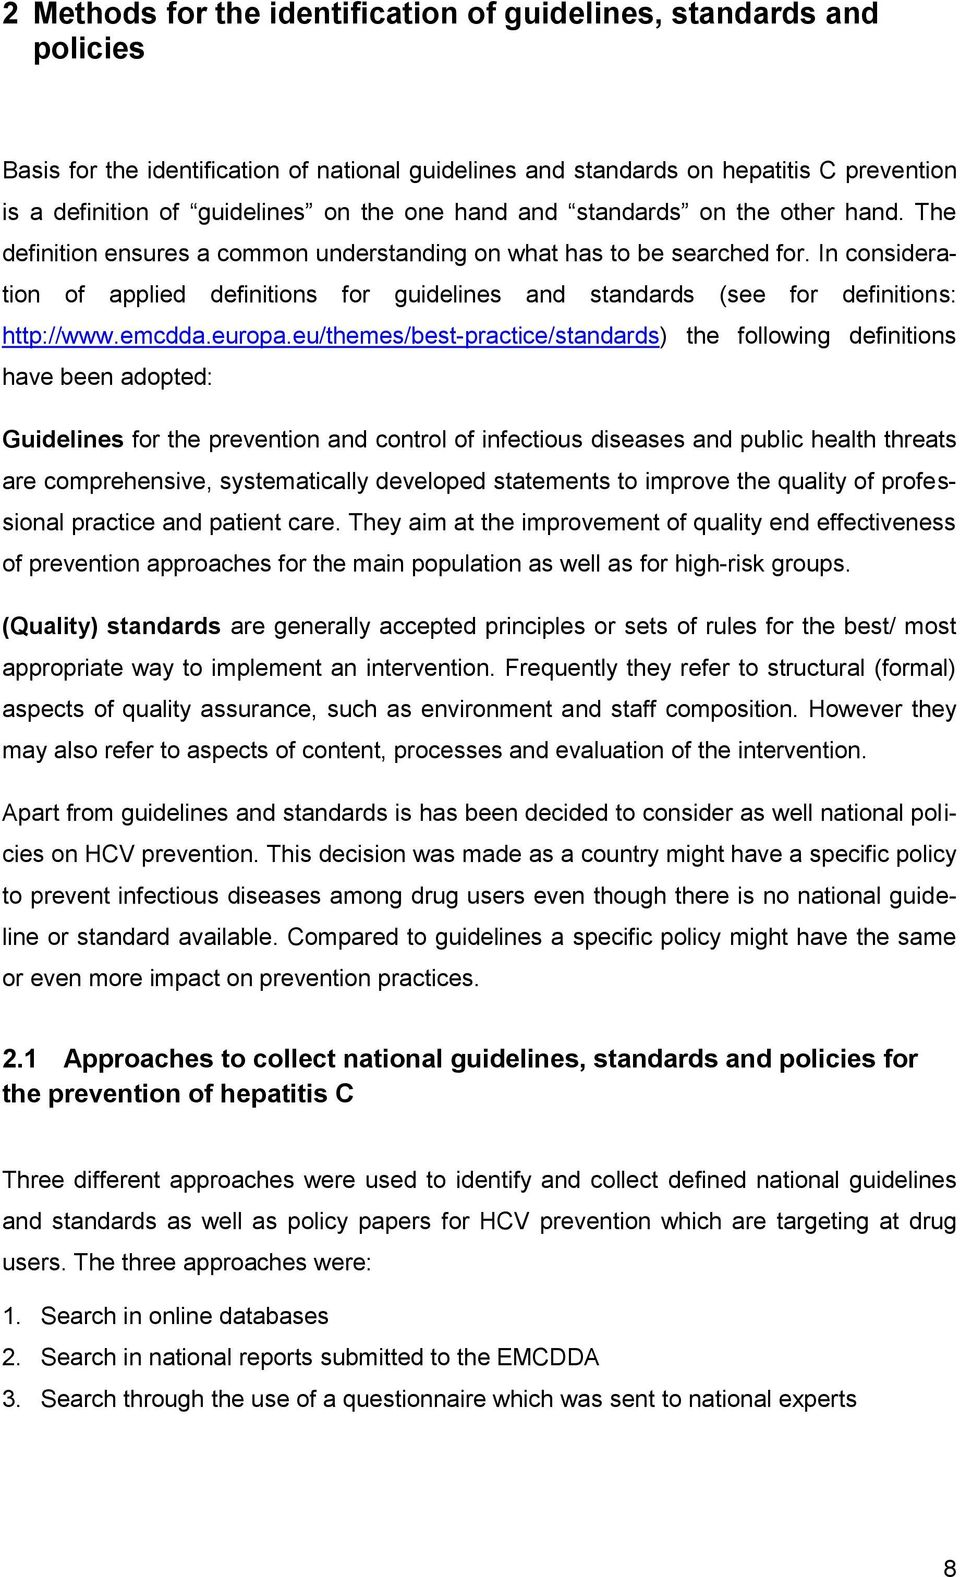 In consideration of applied definitions for guidelines and standards (see for definitions: http://www.emcdda.europa.